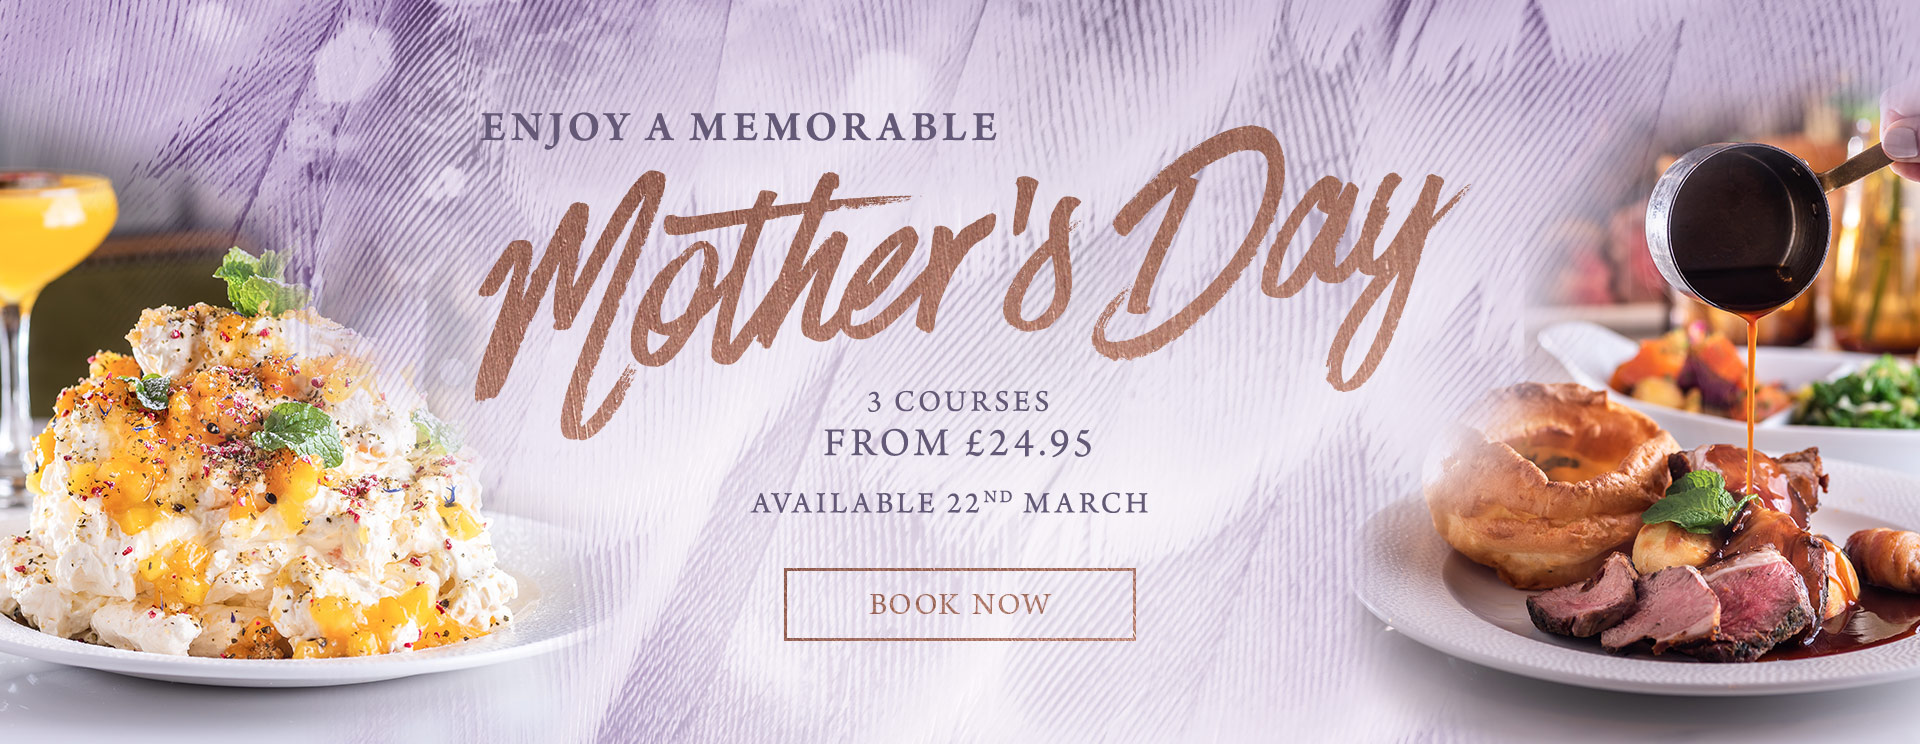 Mother's Day 2019 at The Castle